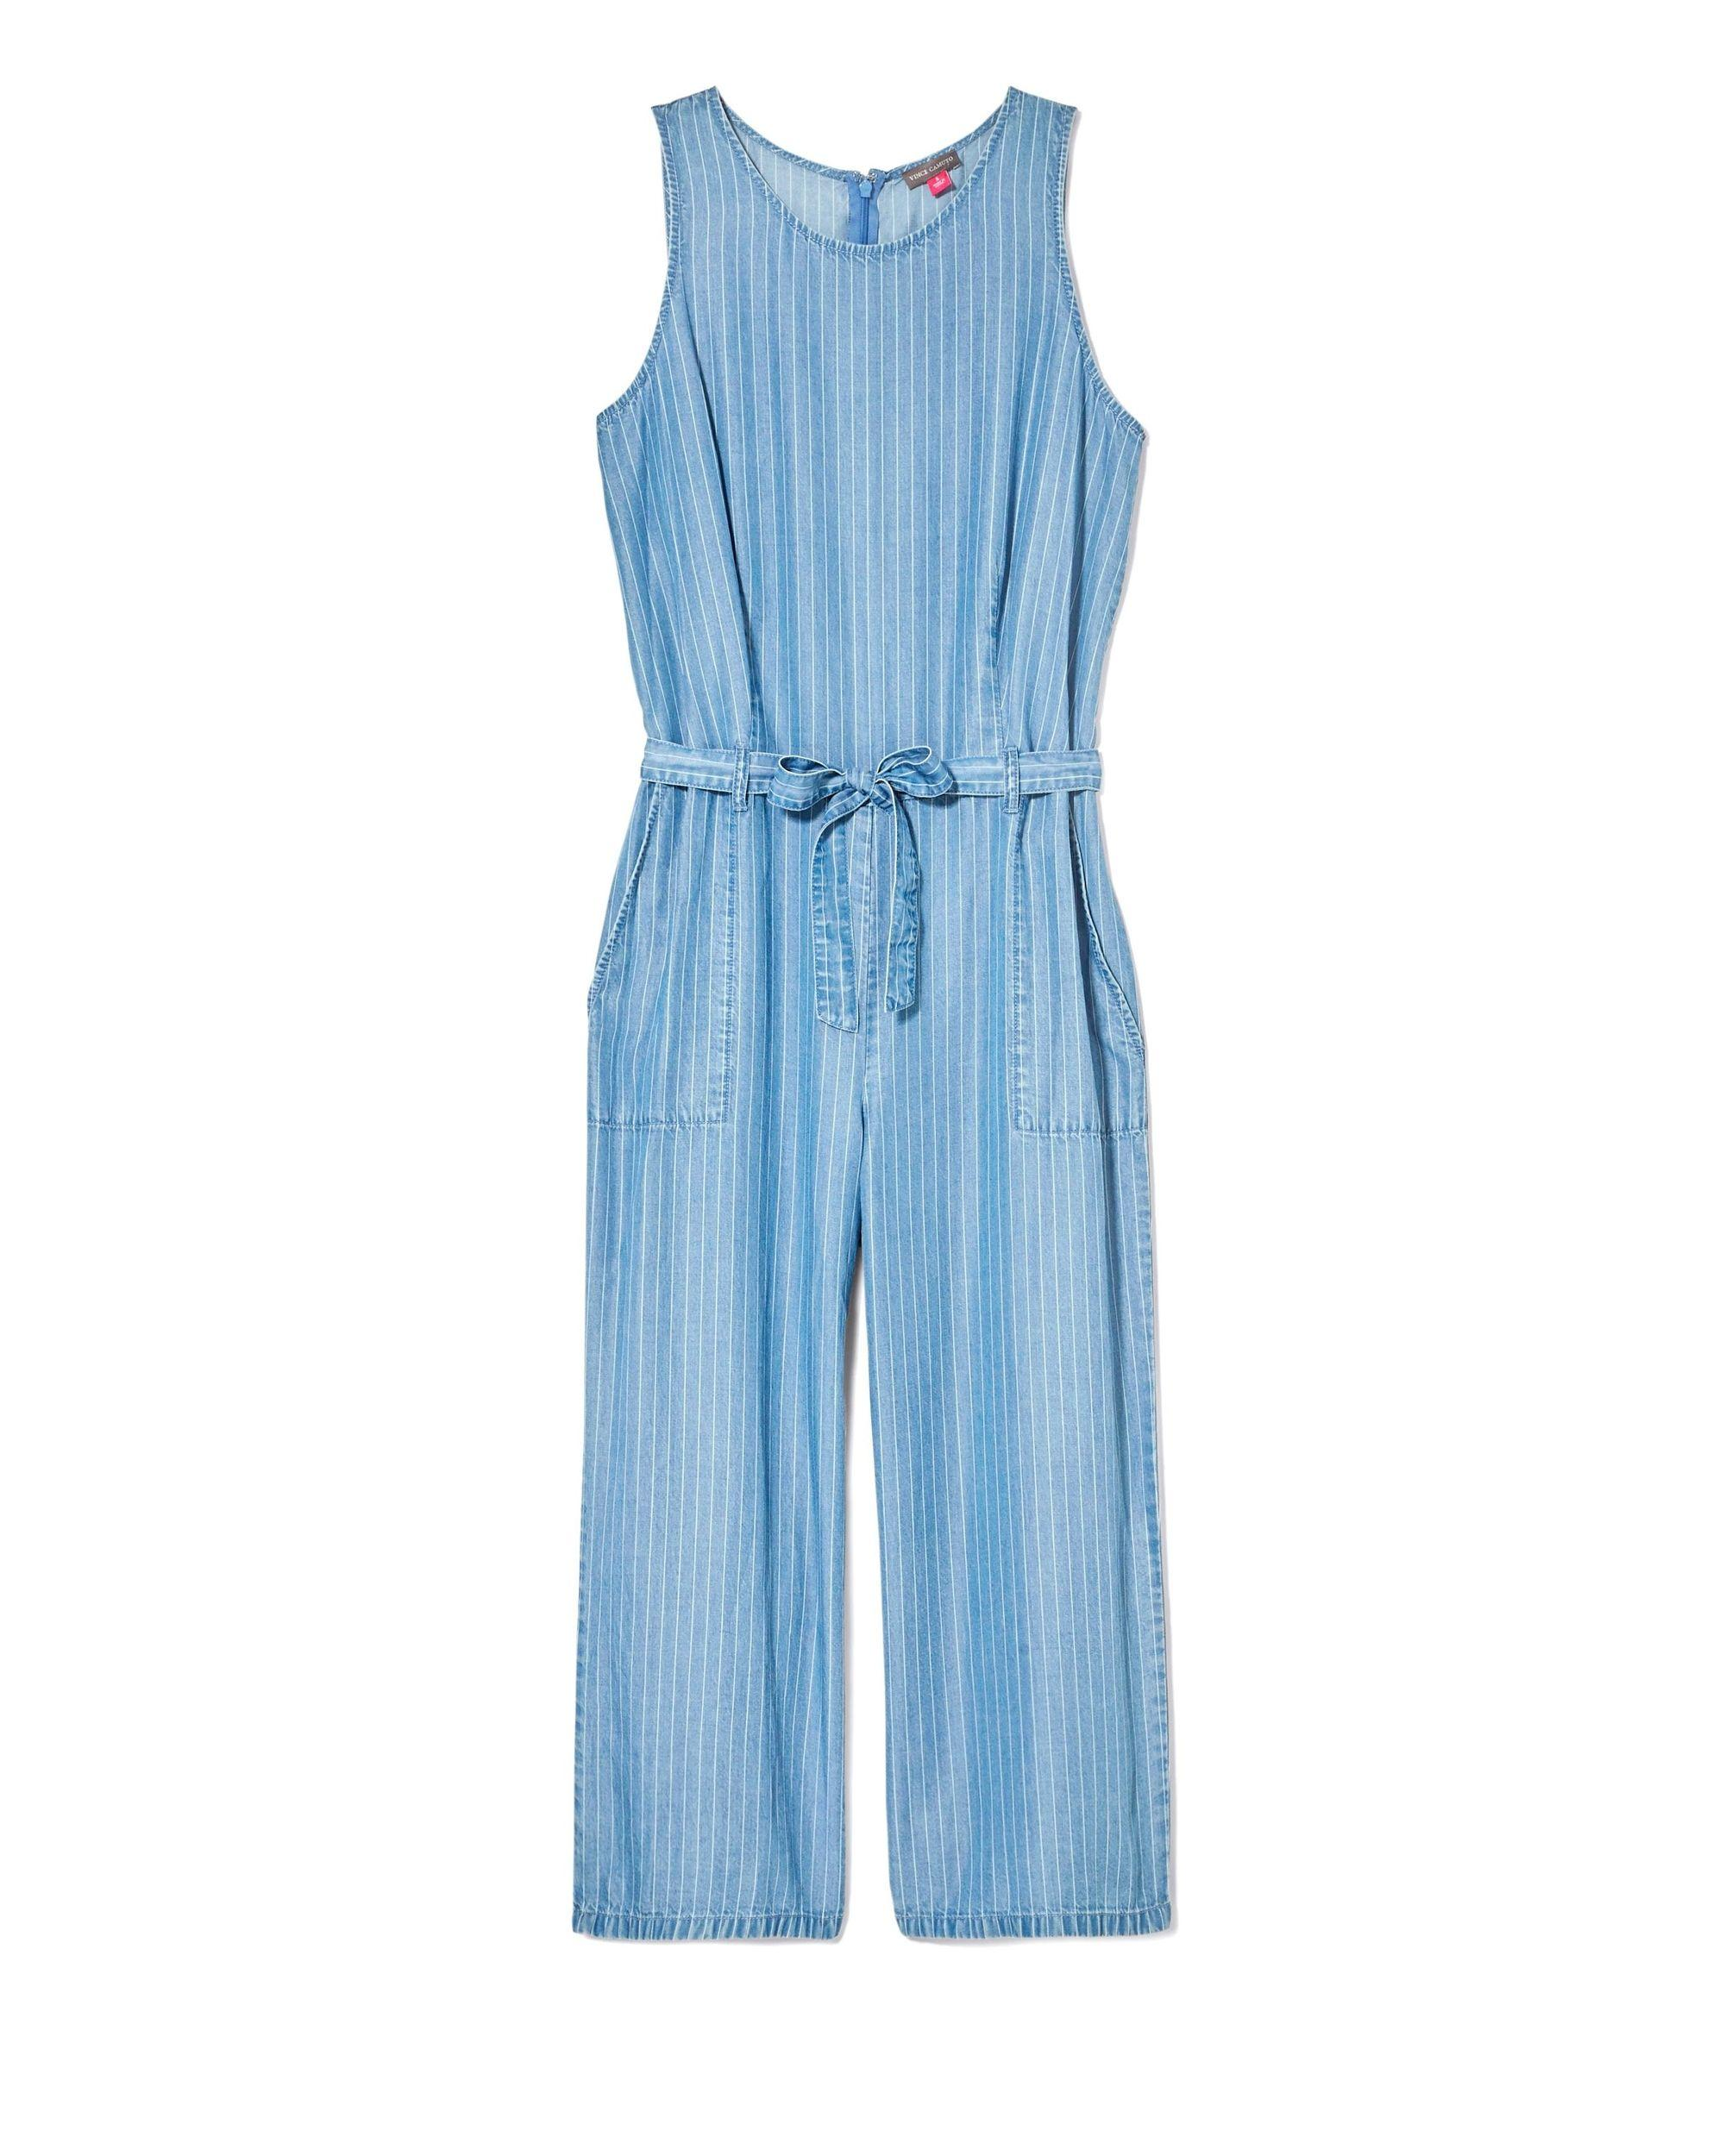 e1b8ef0c717 Lyst - Vince Camuto Striped Culotte Jumpsuit in Blue - Save 41%